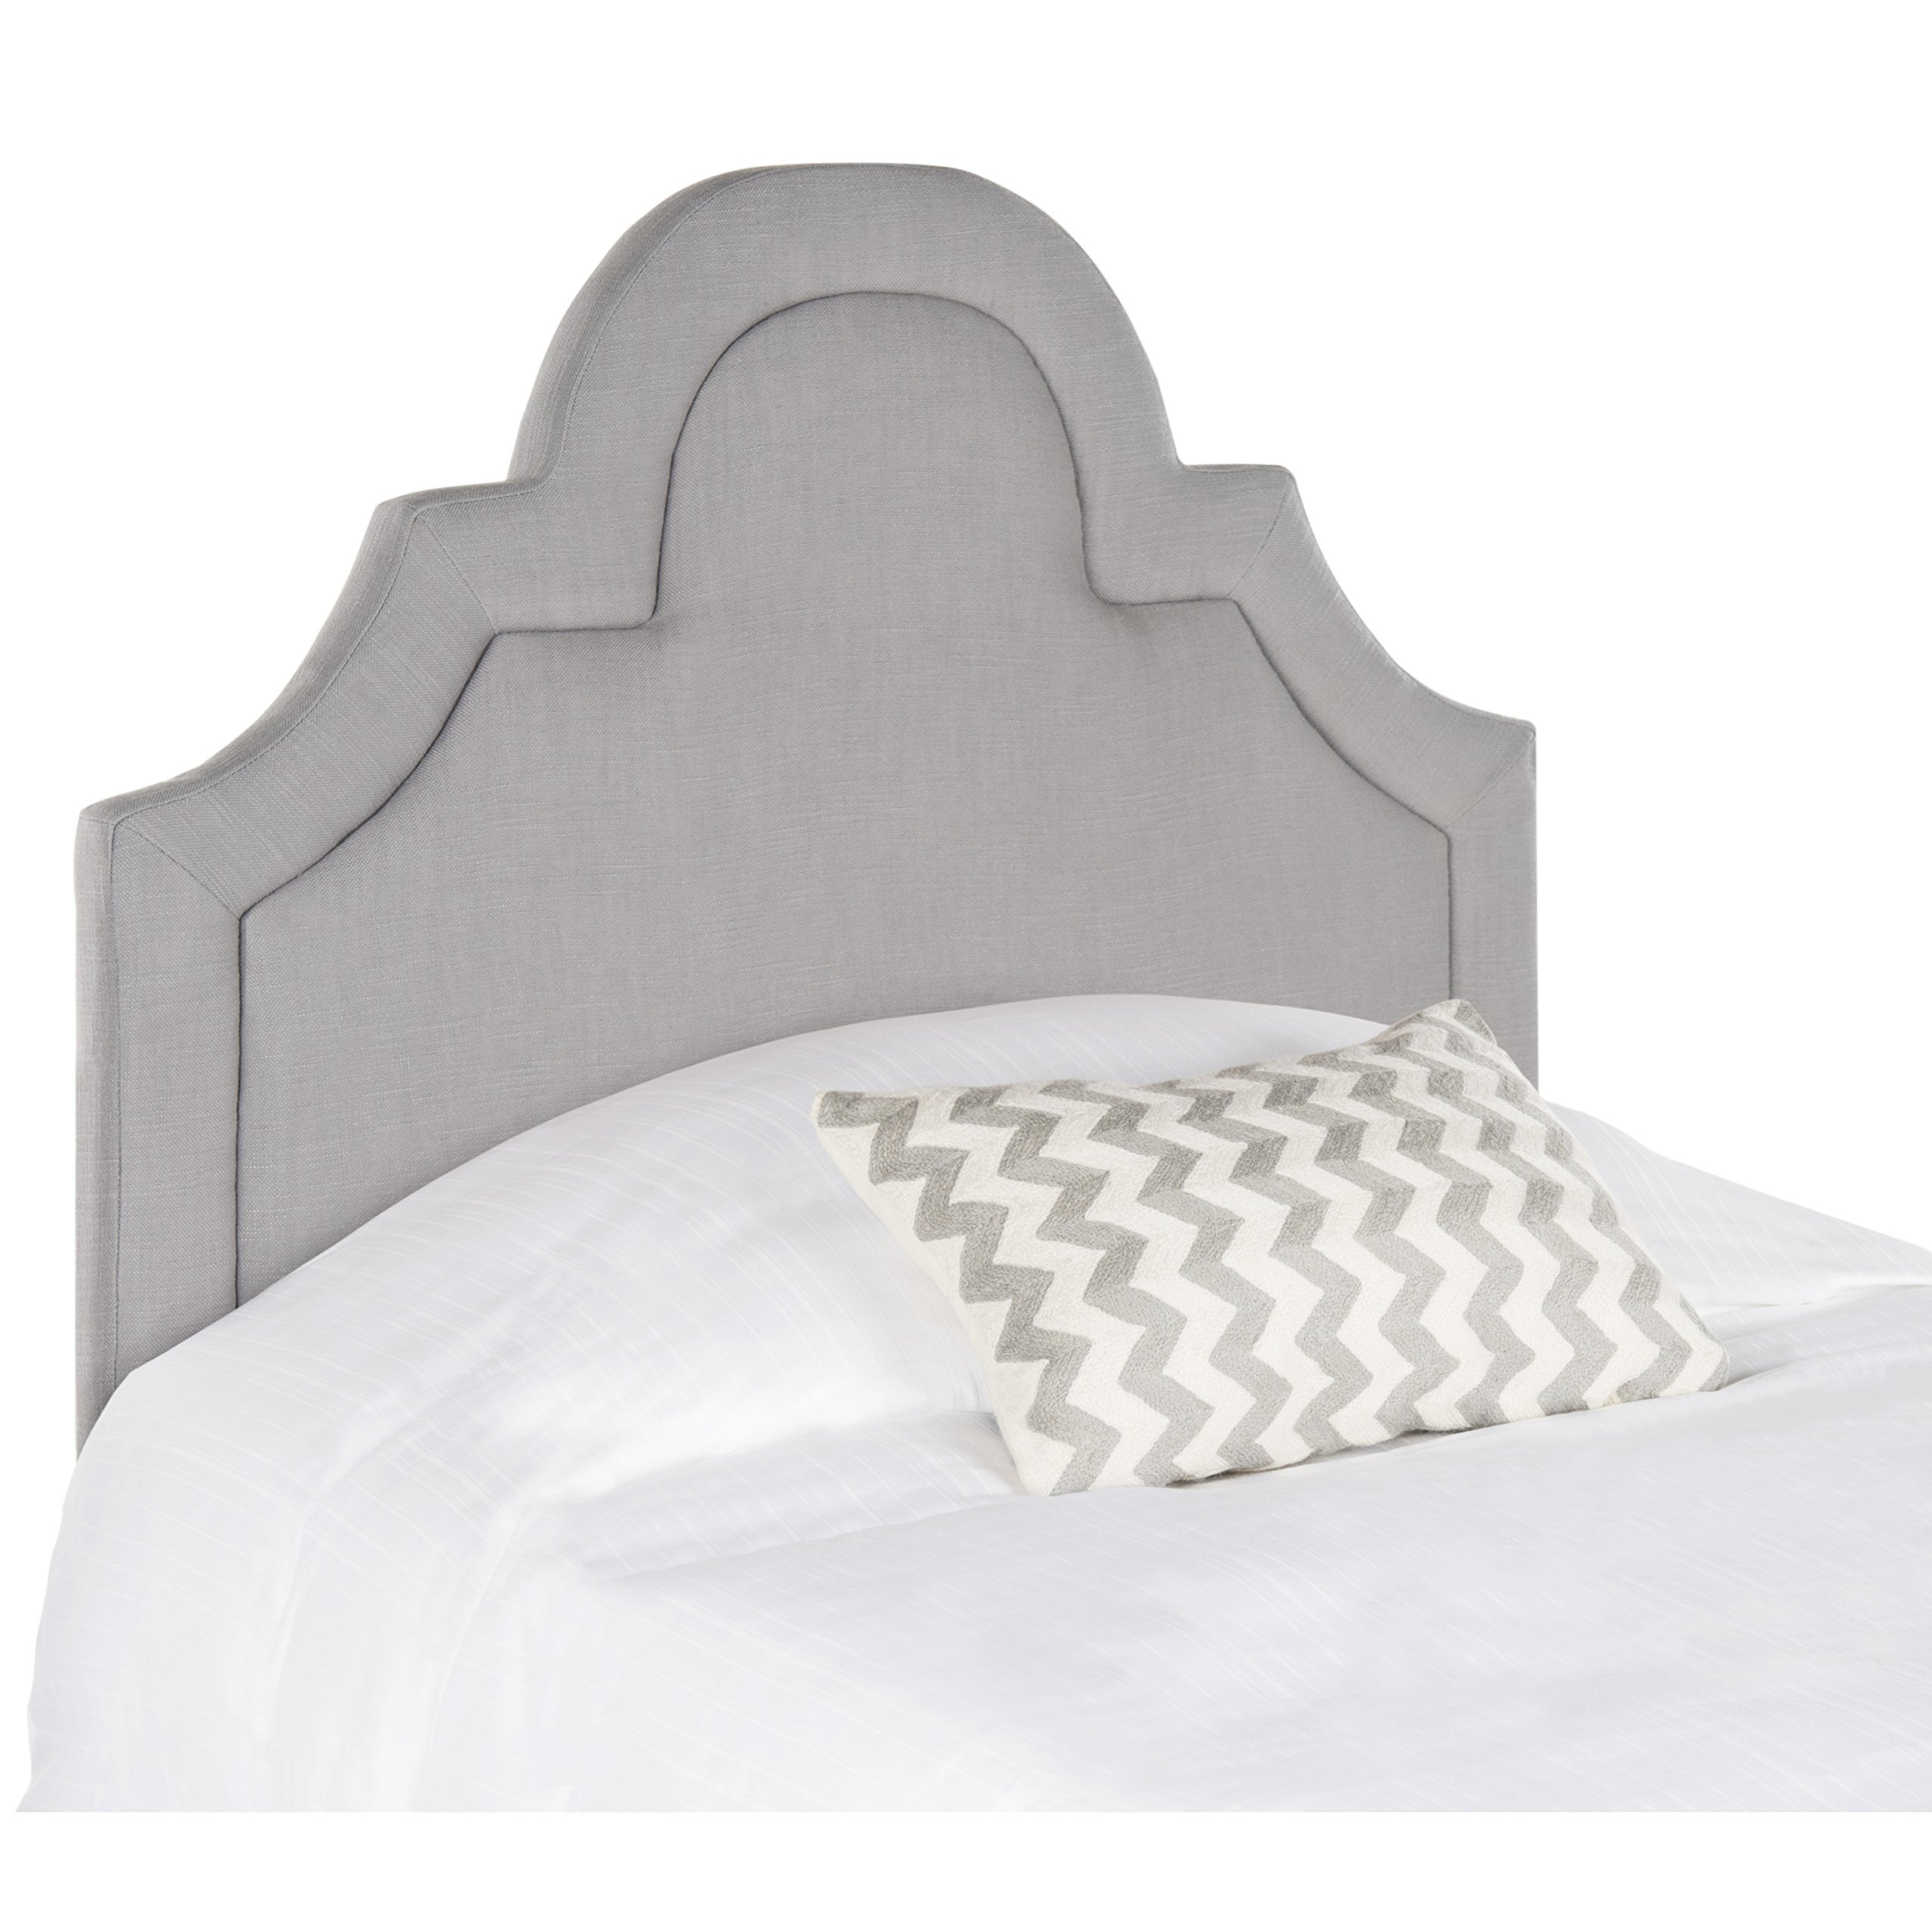 Safavieh Kerstin Arctic Grey Cotton Blend Upholstered Arched Headboard (Twin) by Safavieh (Image #3)